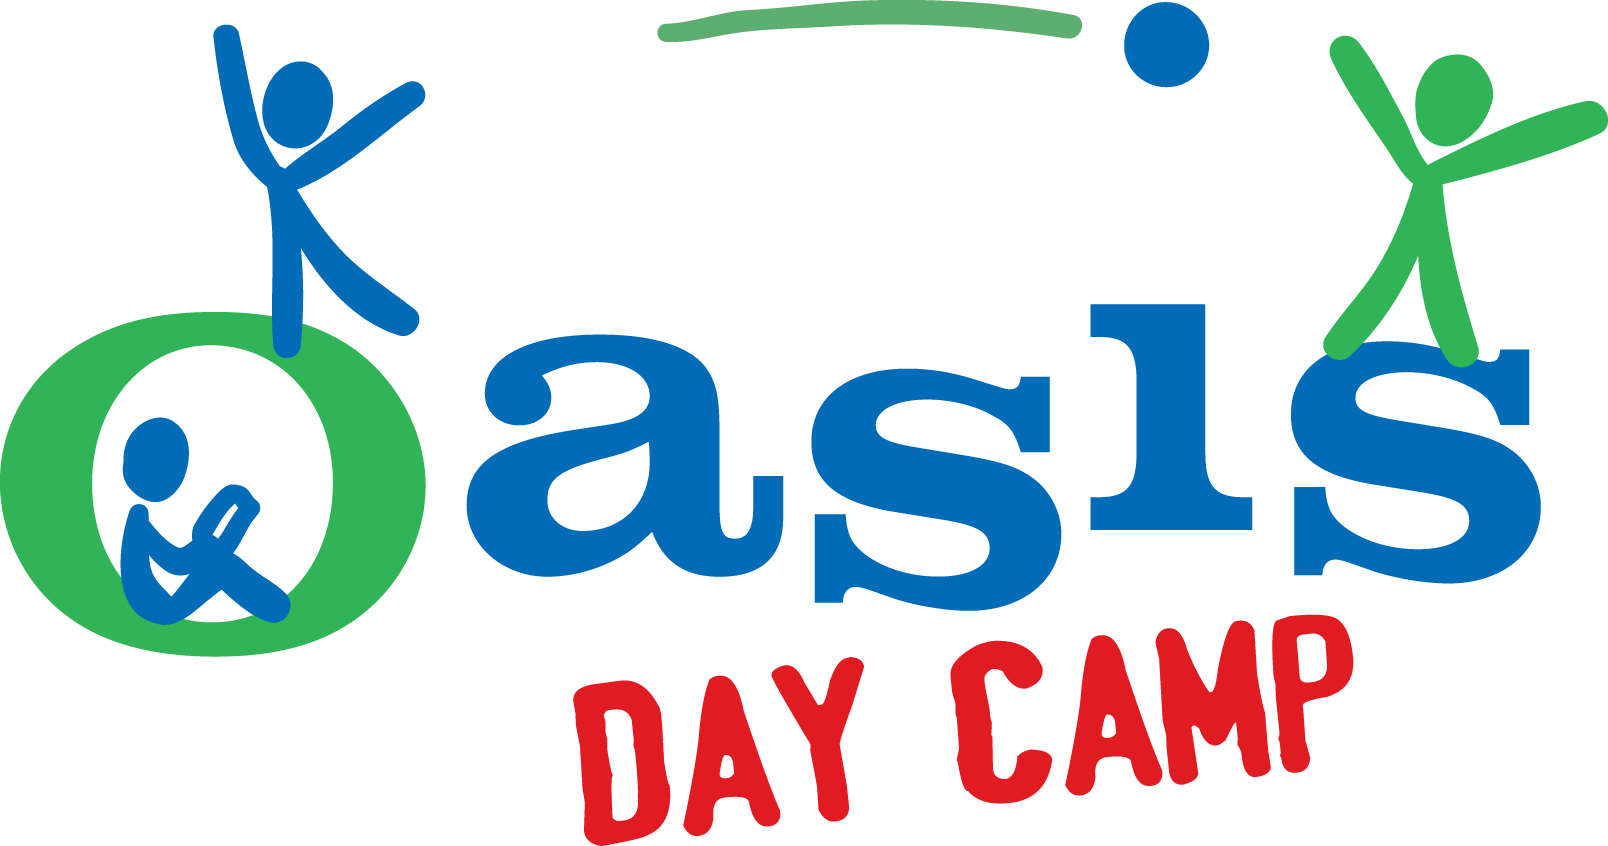 Oasis Day Camps in NYC, LI, Dobbs Ferry and New Jersey